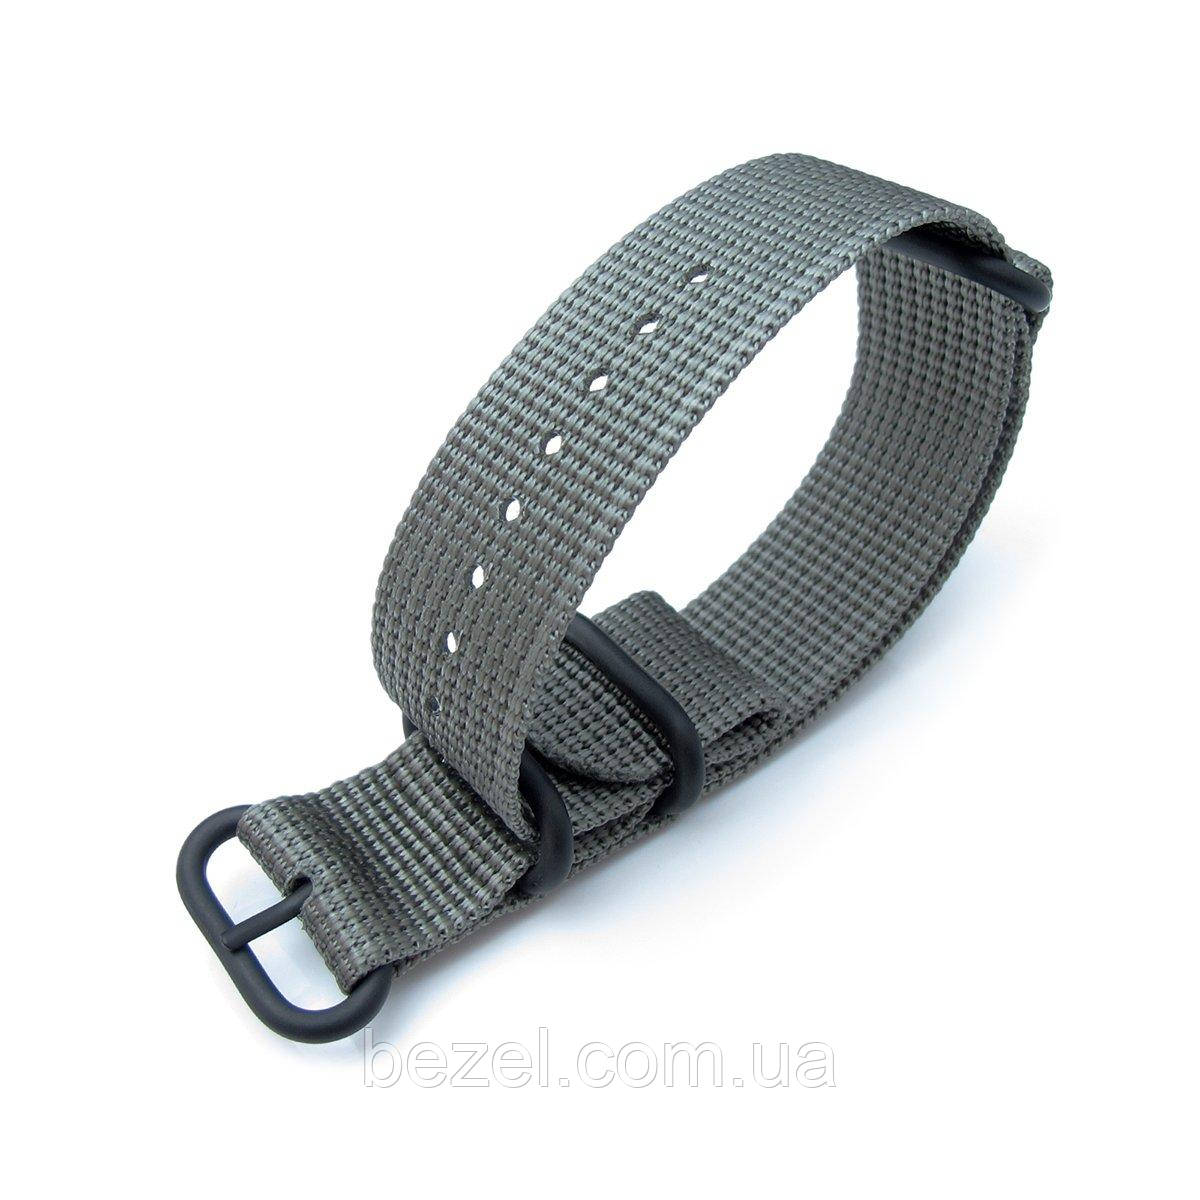 MiLTAT 20mm, 22mm or 26mm 3 Rings Zulu military watch strap 3D woven nylon armband - Grey, PVD Black Hardware